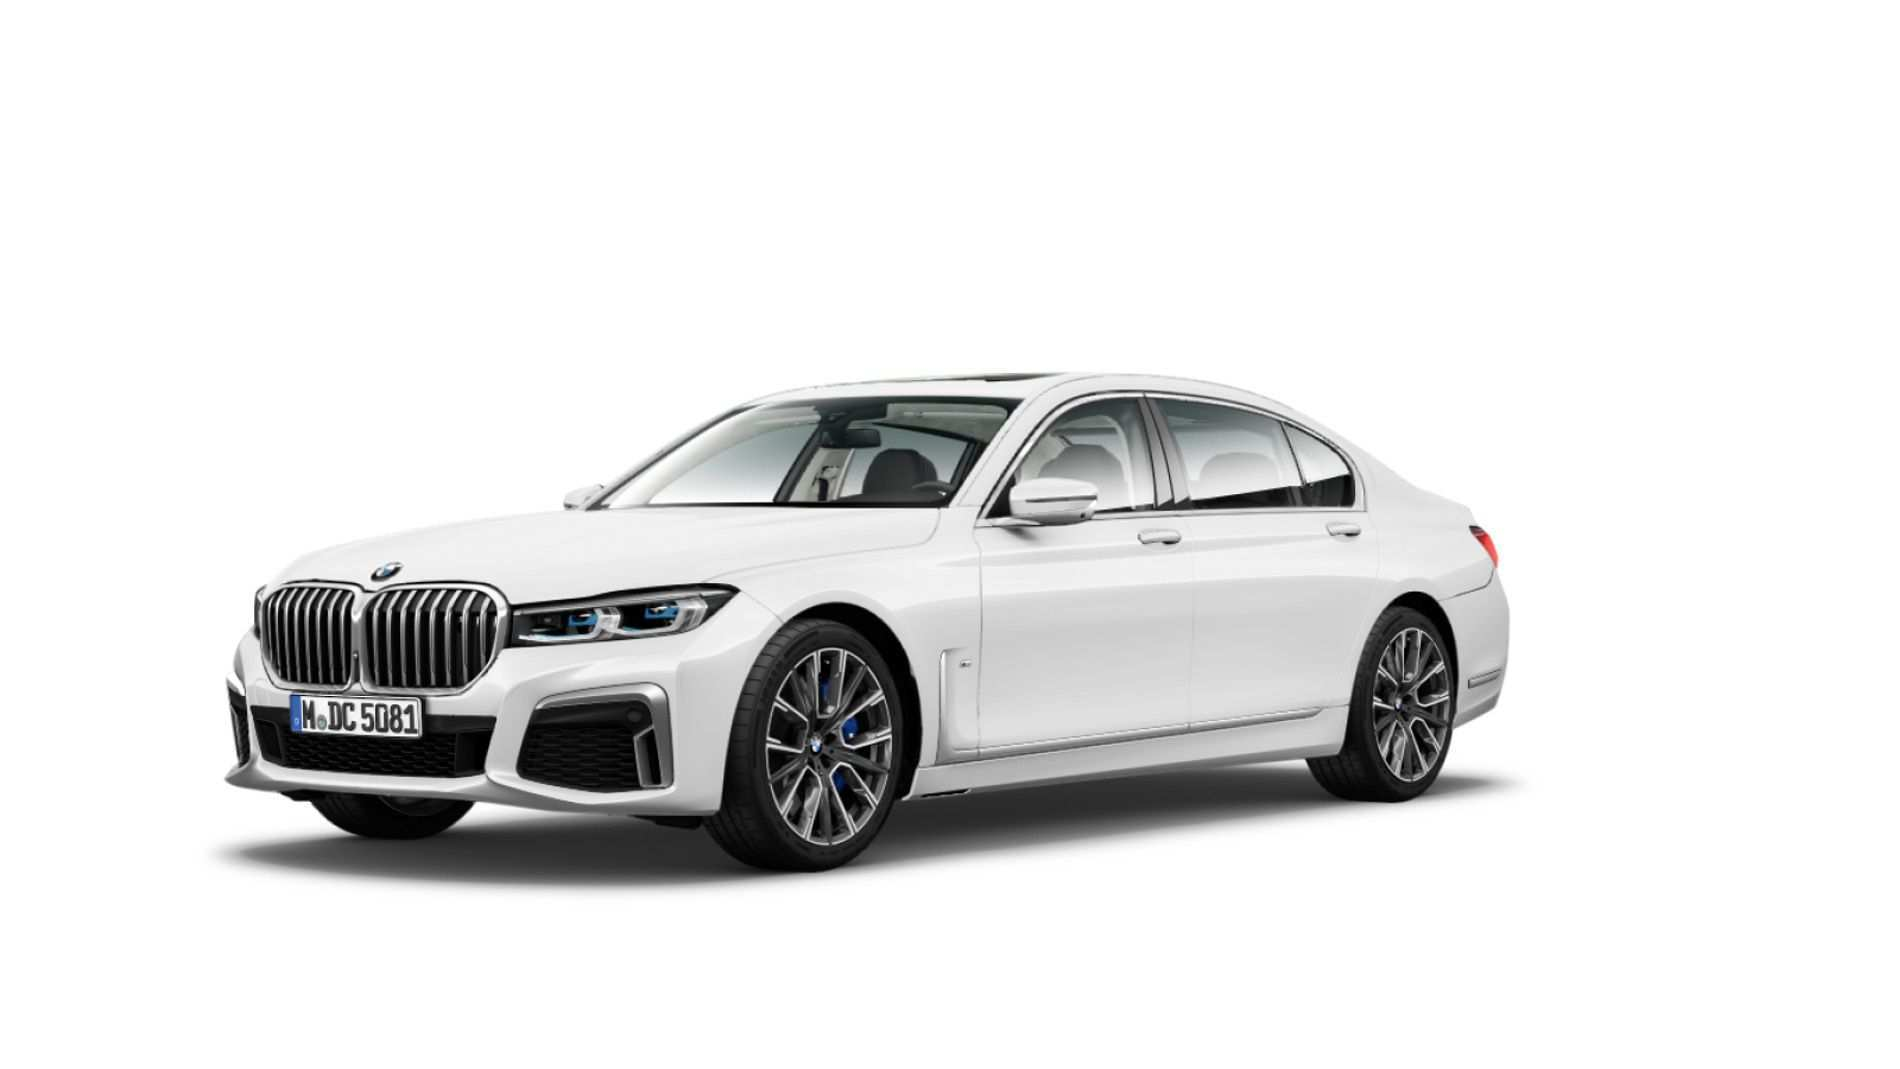 93 All New 2020 BMW 7 Series Lci Picture by 2020 BMW 7 Series Lci